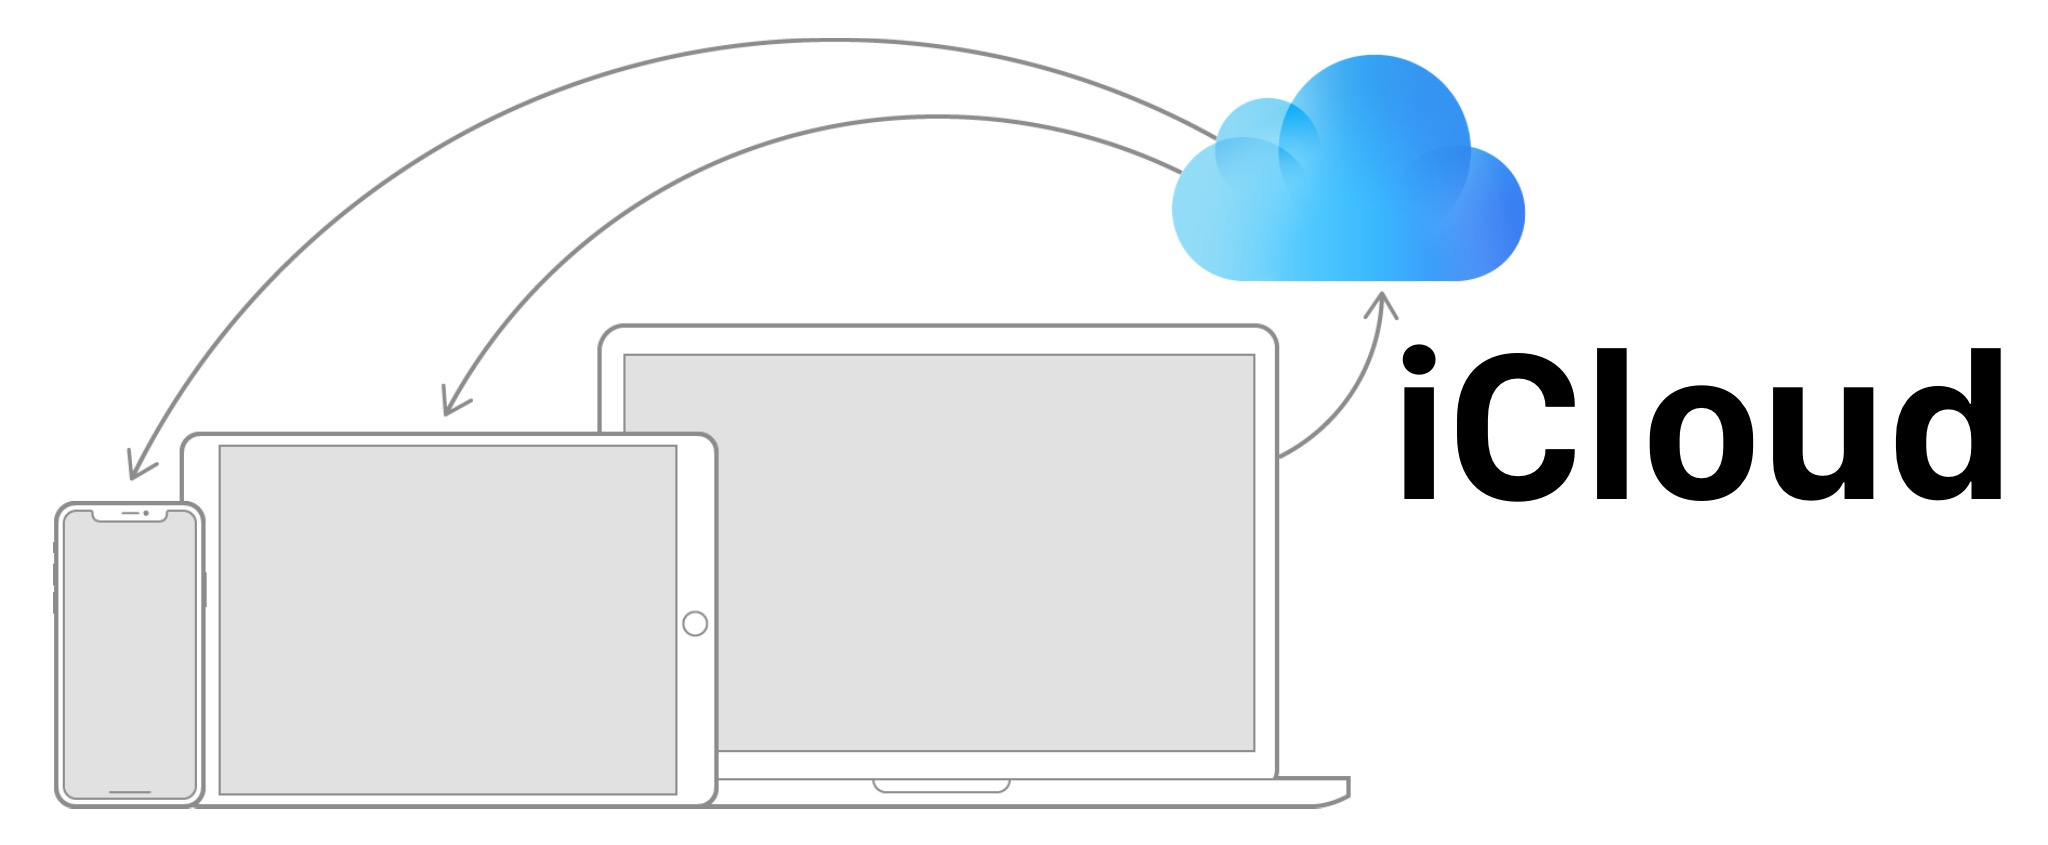 app-subscriptions-worth-paying-for-icloud-storage